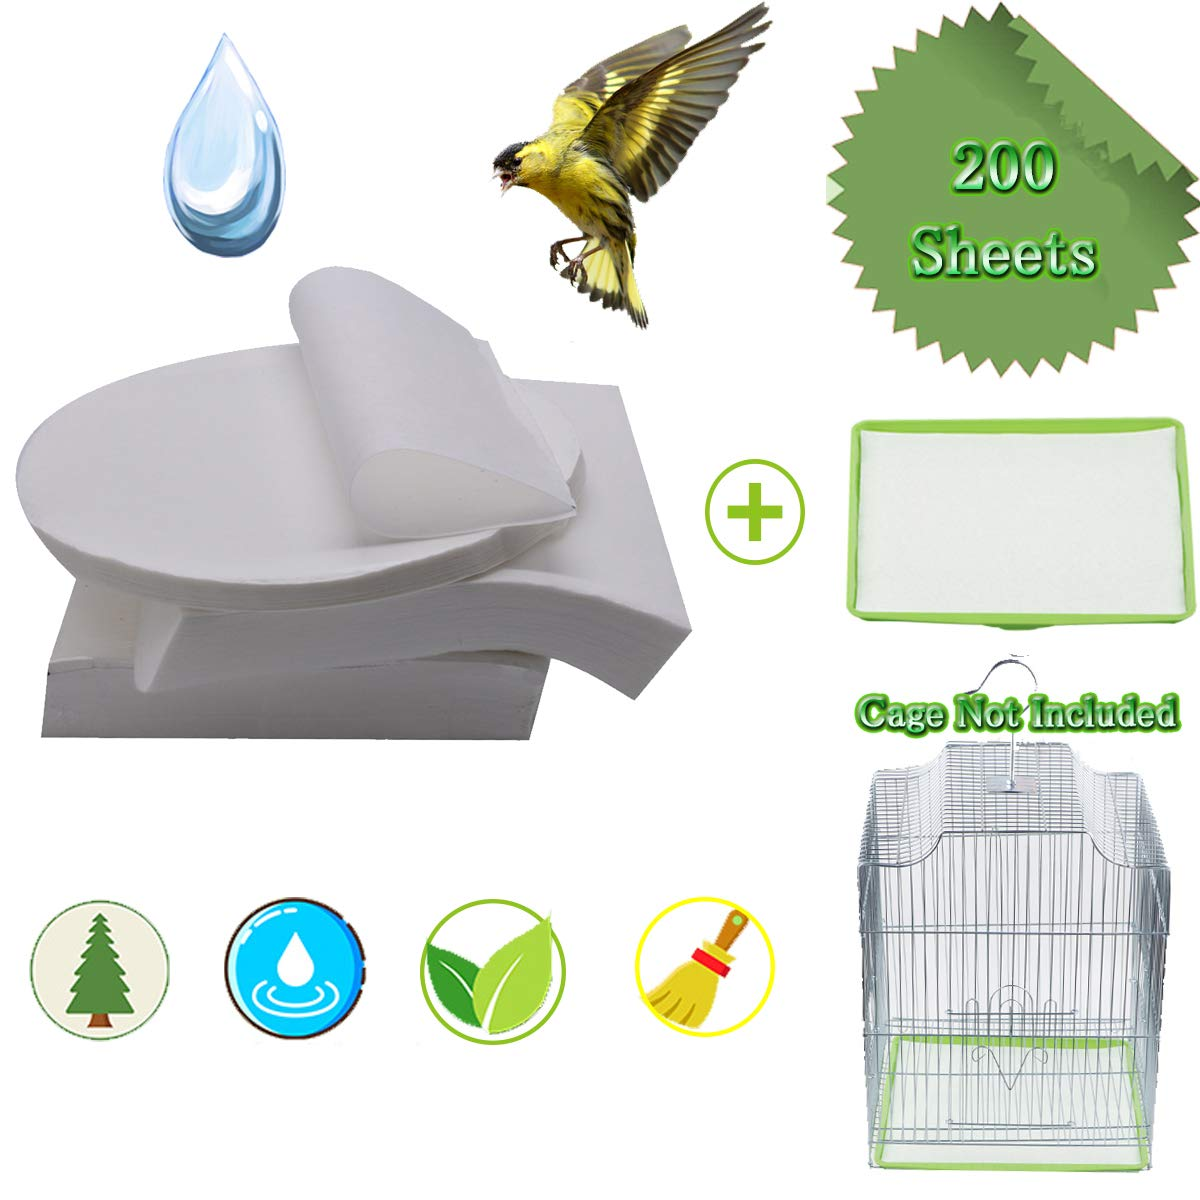 Bonaweite Extra Large Disposable Non-Woven Bird Cage Liners Papers, Parrot Pet Cages Cushion Pad Mat Accessories - 200 Sheets by Bonaweite